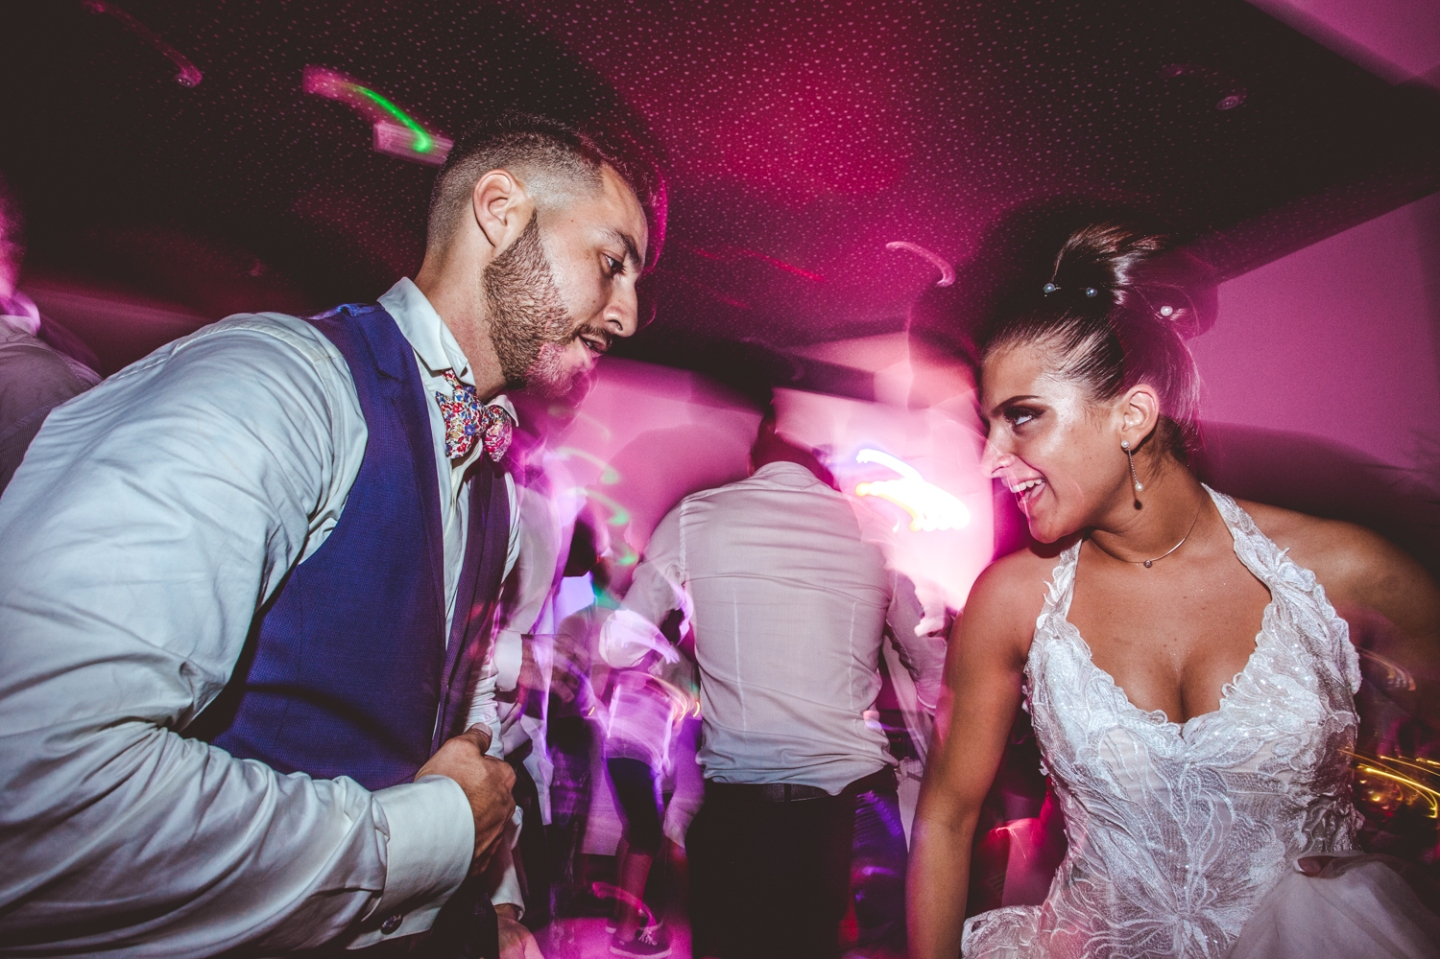 photo-mariage-soiree-dancefloor-gateau-chateau-de-mons